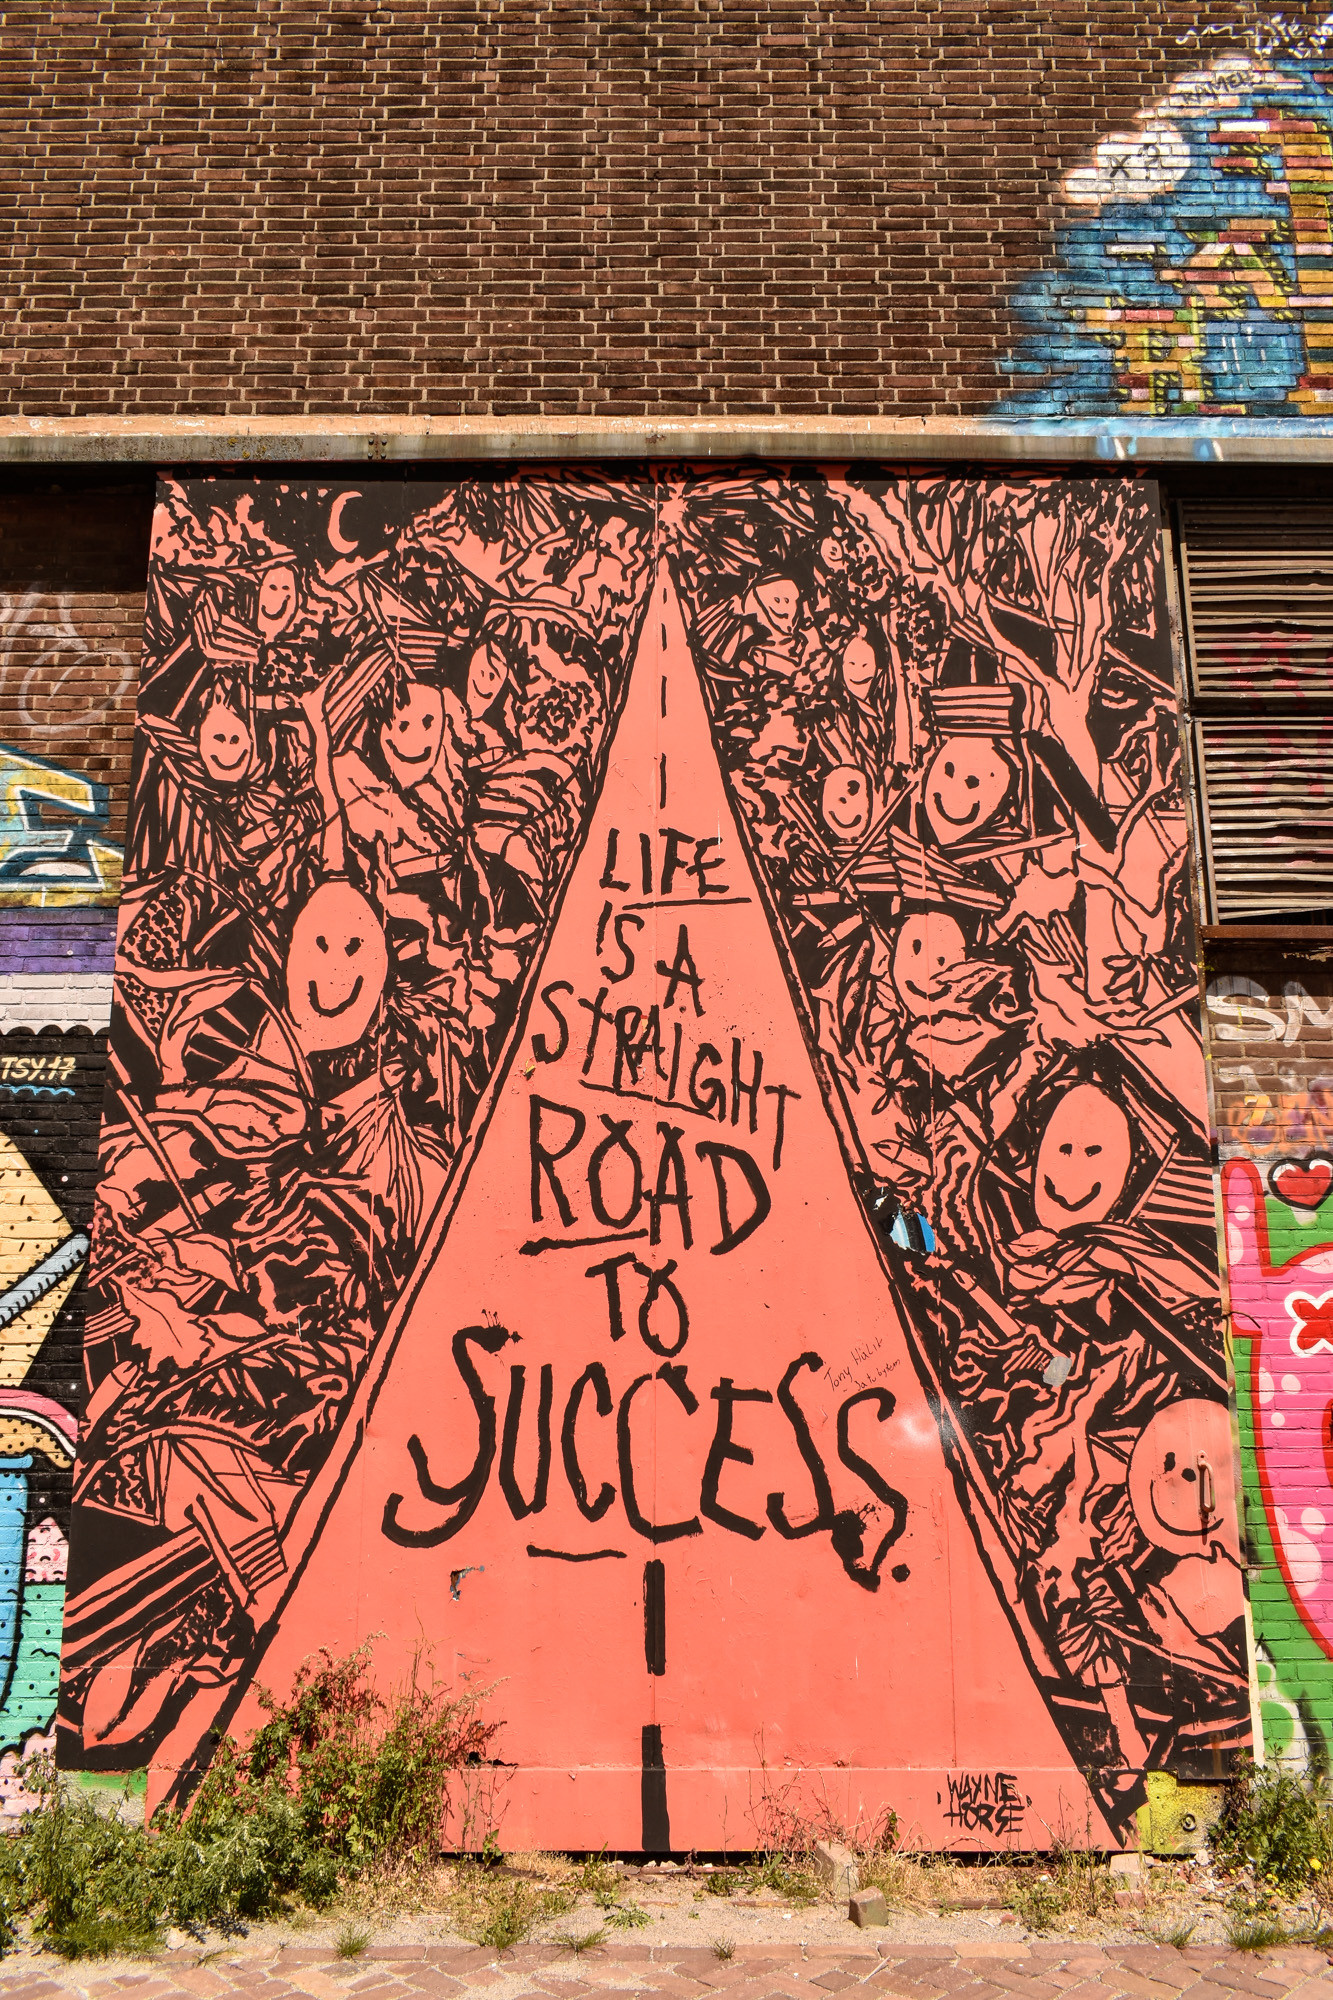 Life is a straight road to success street art Amsterdam